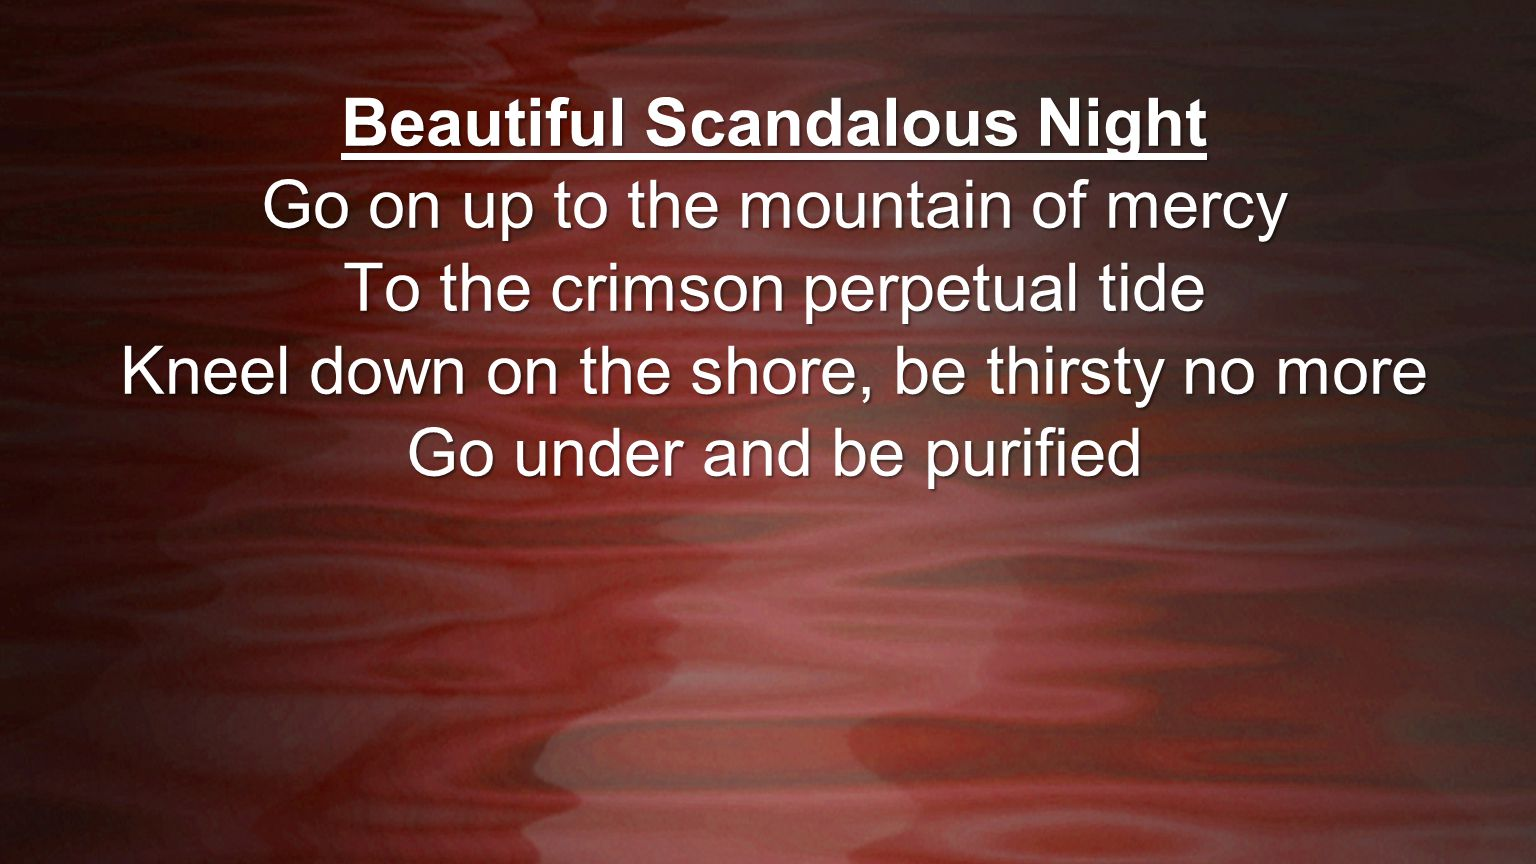 Beautiful Scandalous Night